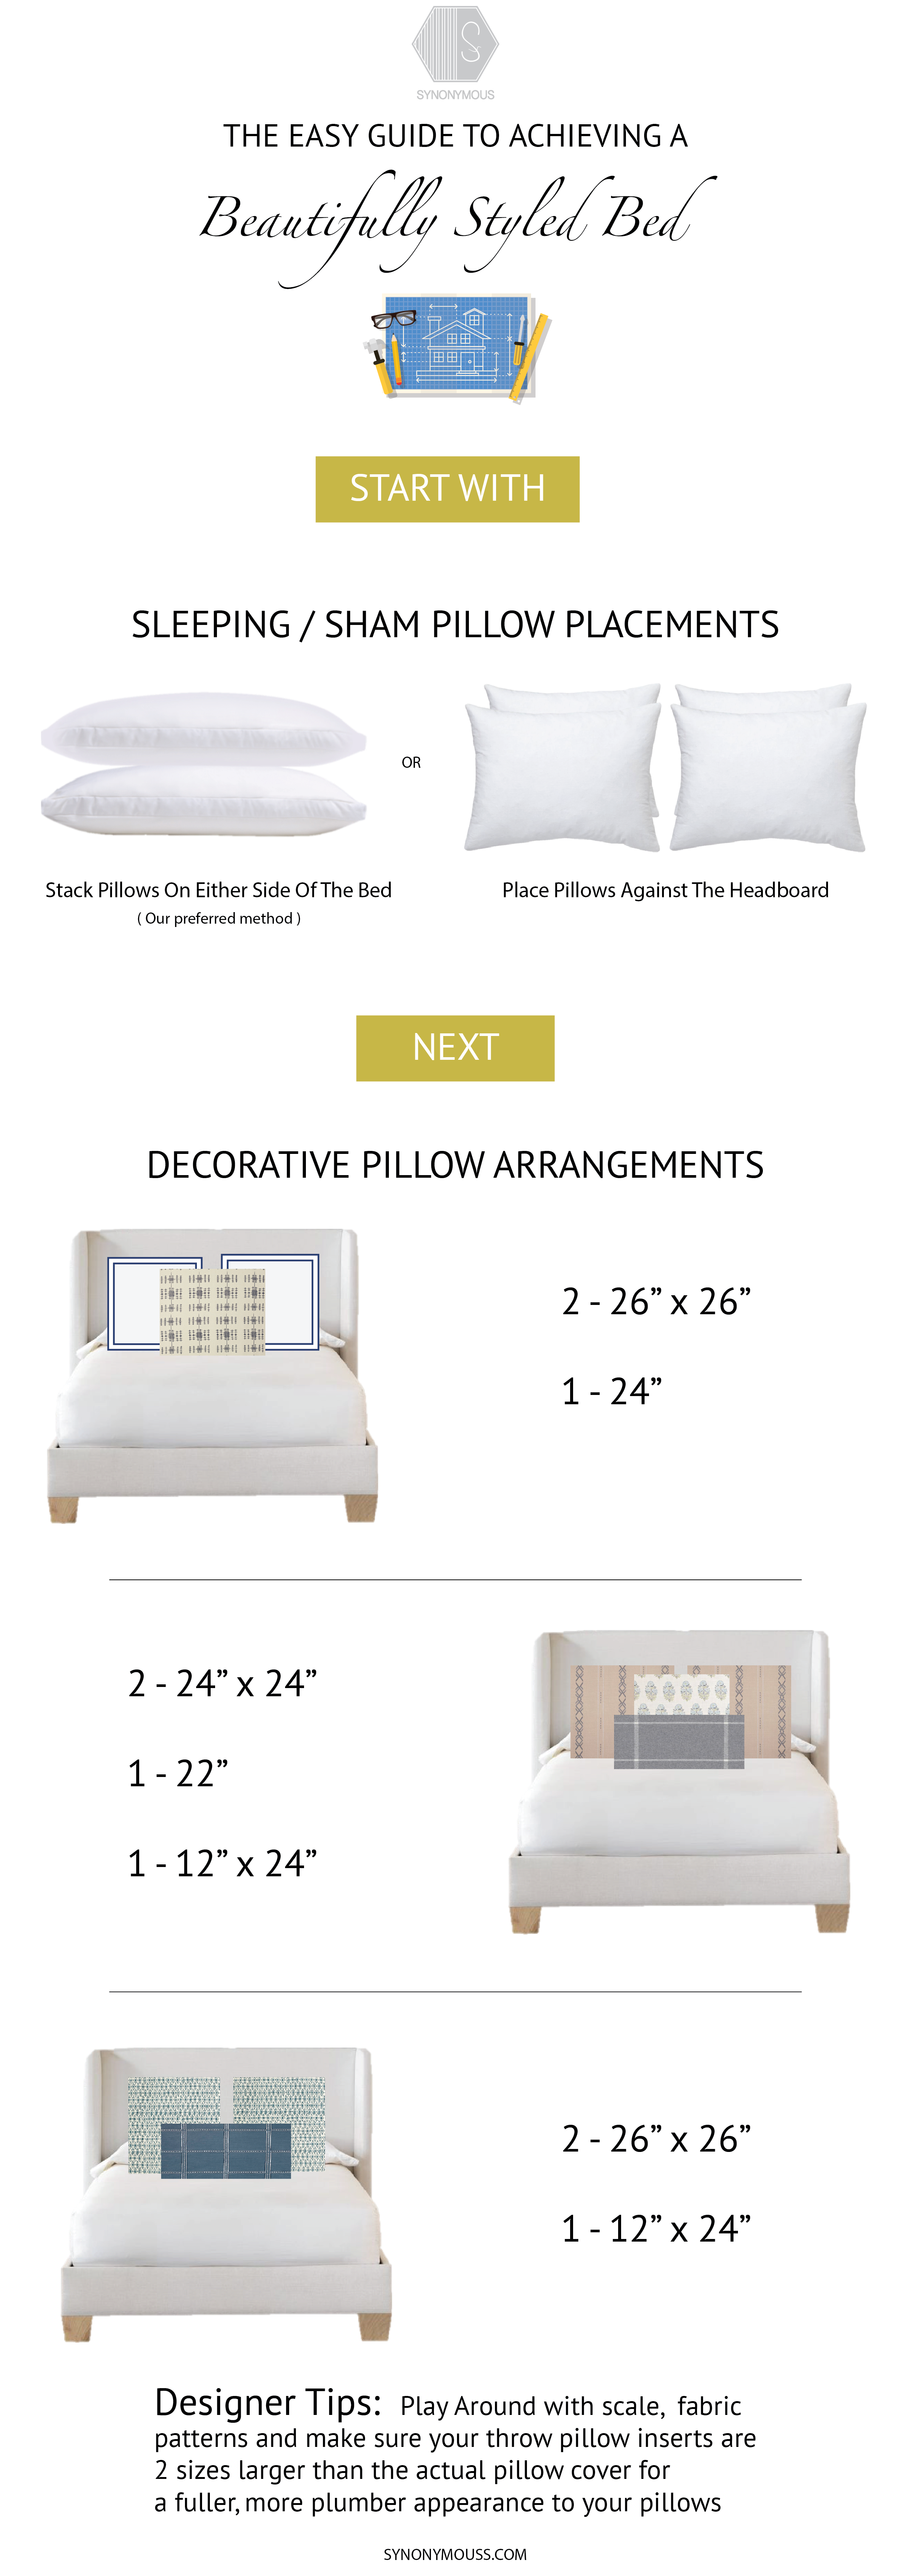 Guide To Styling A Beautiful Bed - SYNONYMOUS